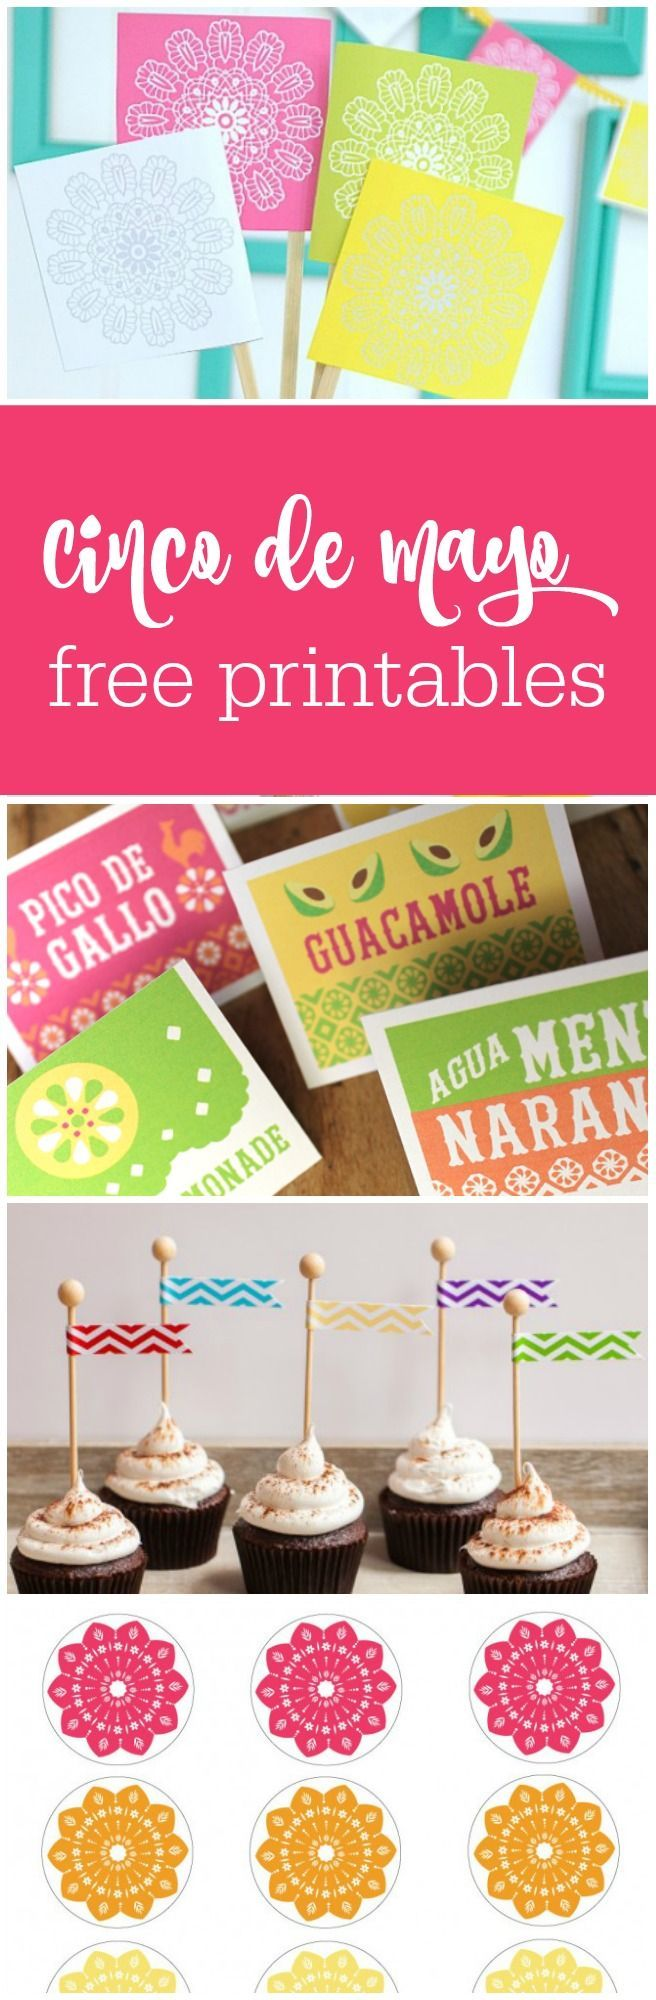 Mexican fiesta party decorating ideas hosting guide - 13 Free Cinco De Mayo Printables Curated By The Party Teacher Http